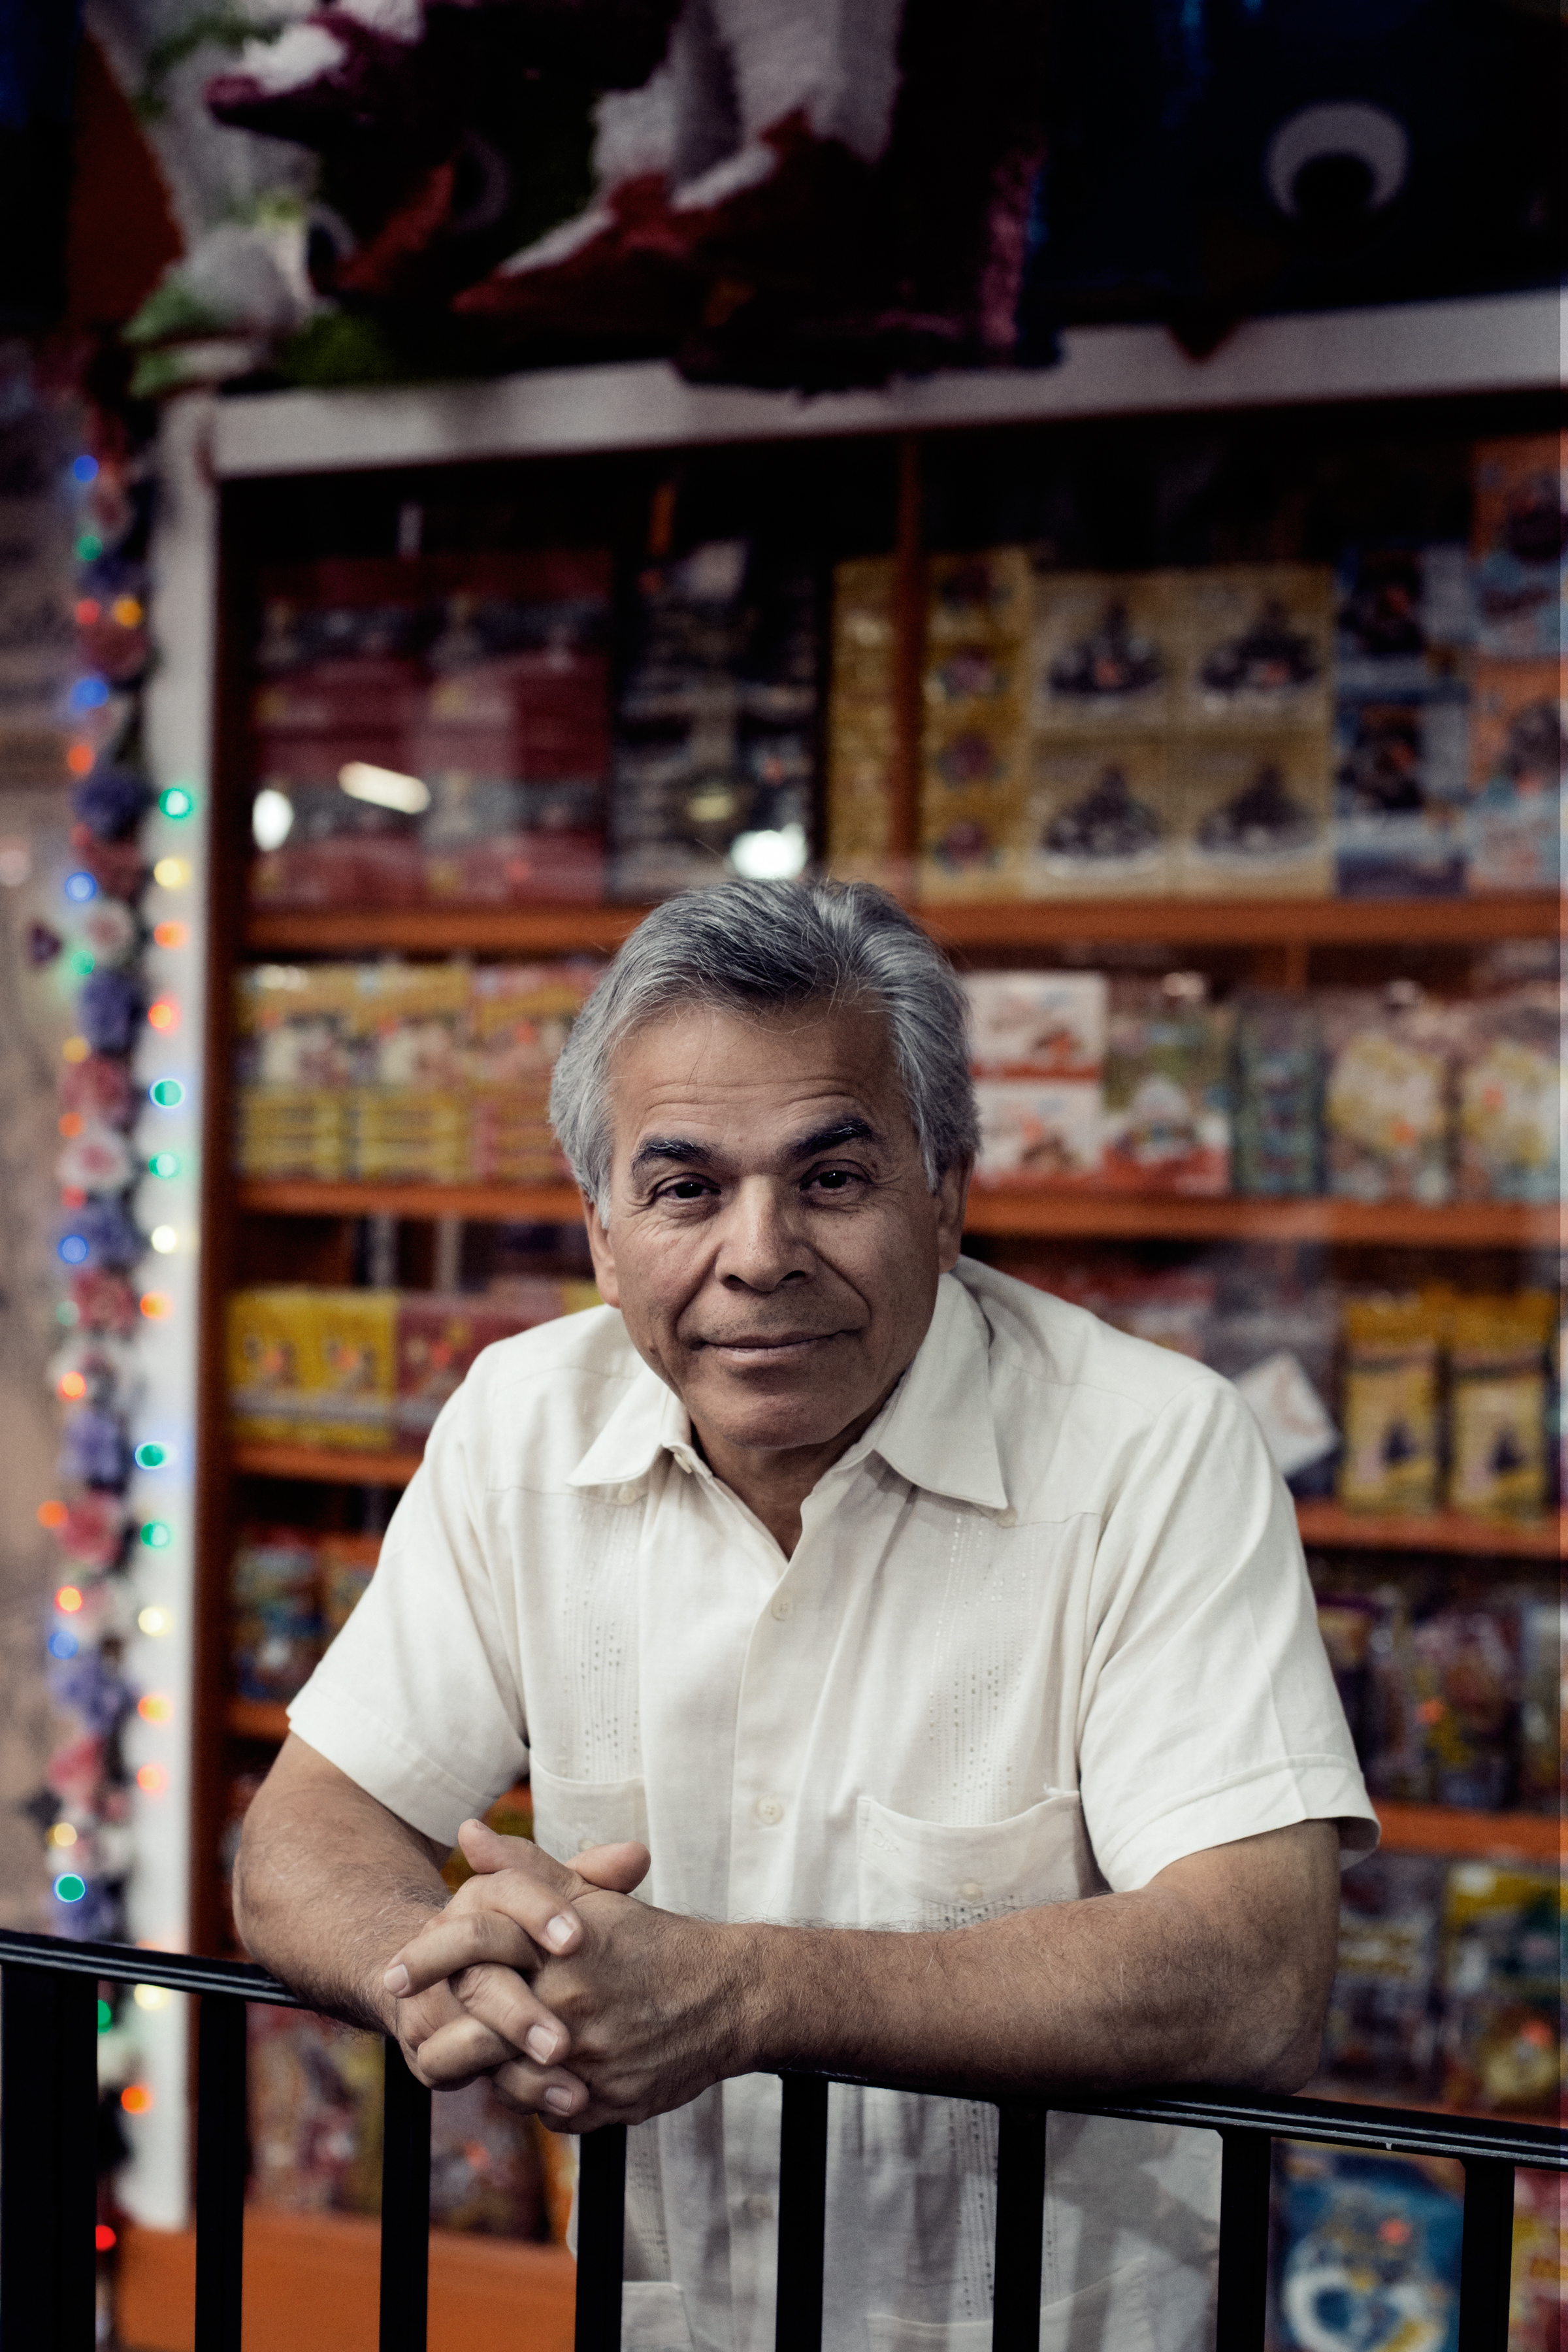 José de Jesús Legaspi, a Mexican impresario and owner of La Gran Plaza mall outside Fort Worth, Texas. Legaspi's business is focused on converting dying American mall spaces and converting them to shopping centers tailored to the Hispanic, specifically the Mexican/American market.